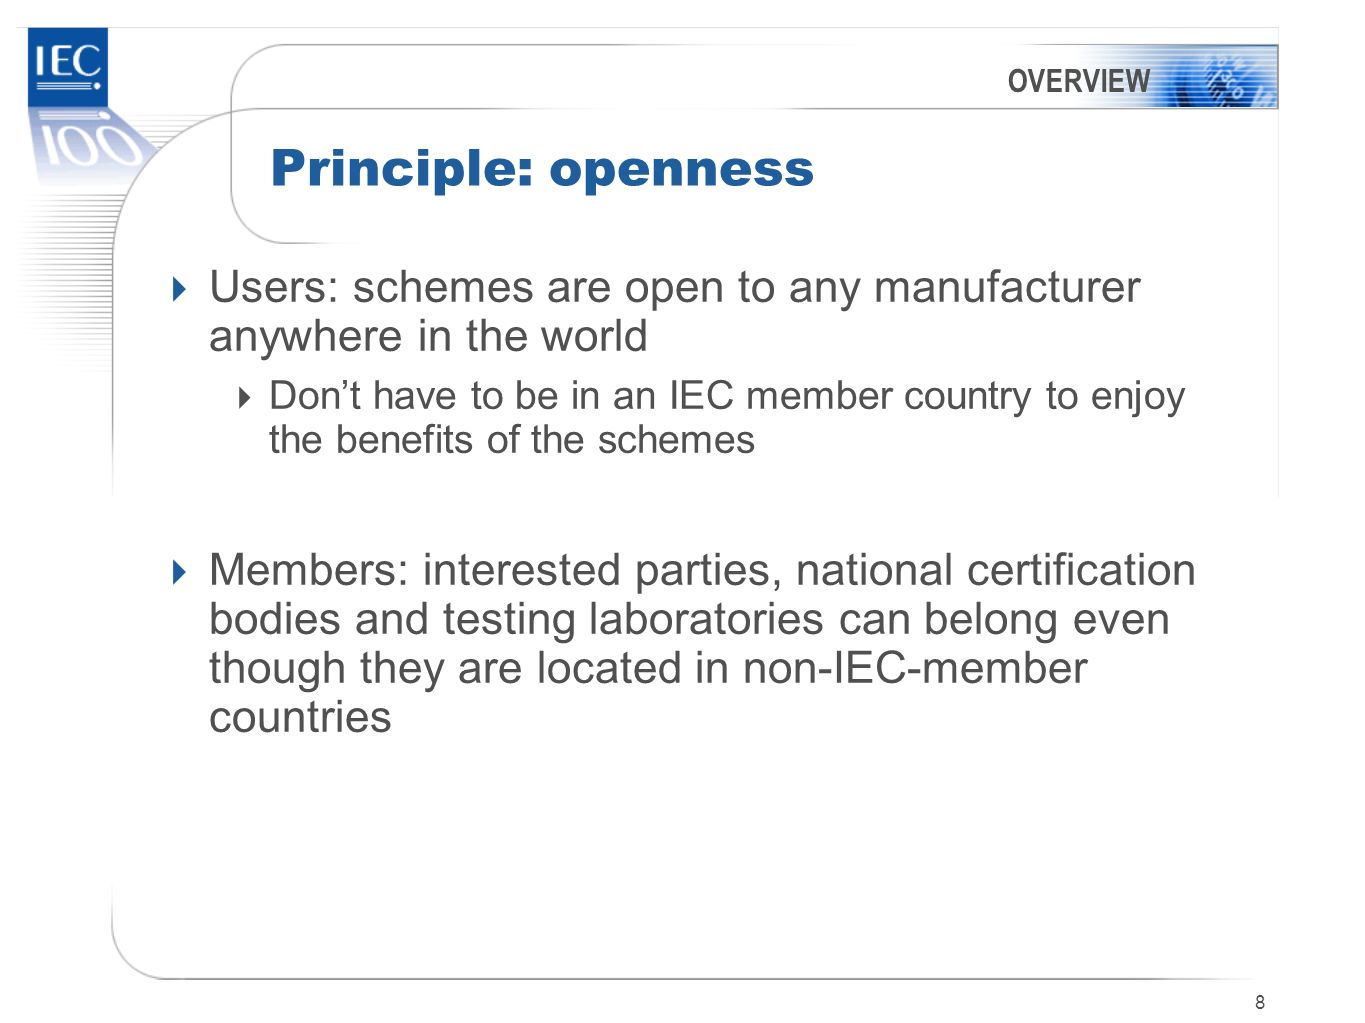 OVERVIEW Principle: openness. Users: schemes are open to any manufacturer anywhere in the world.